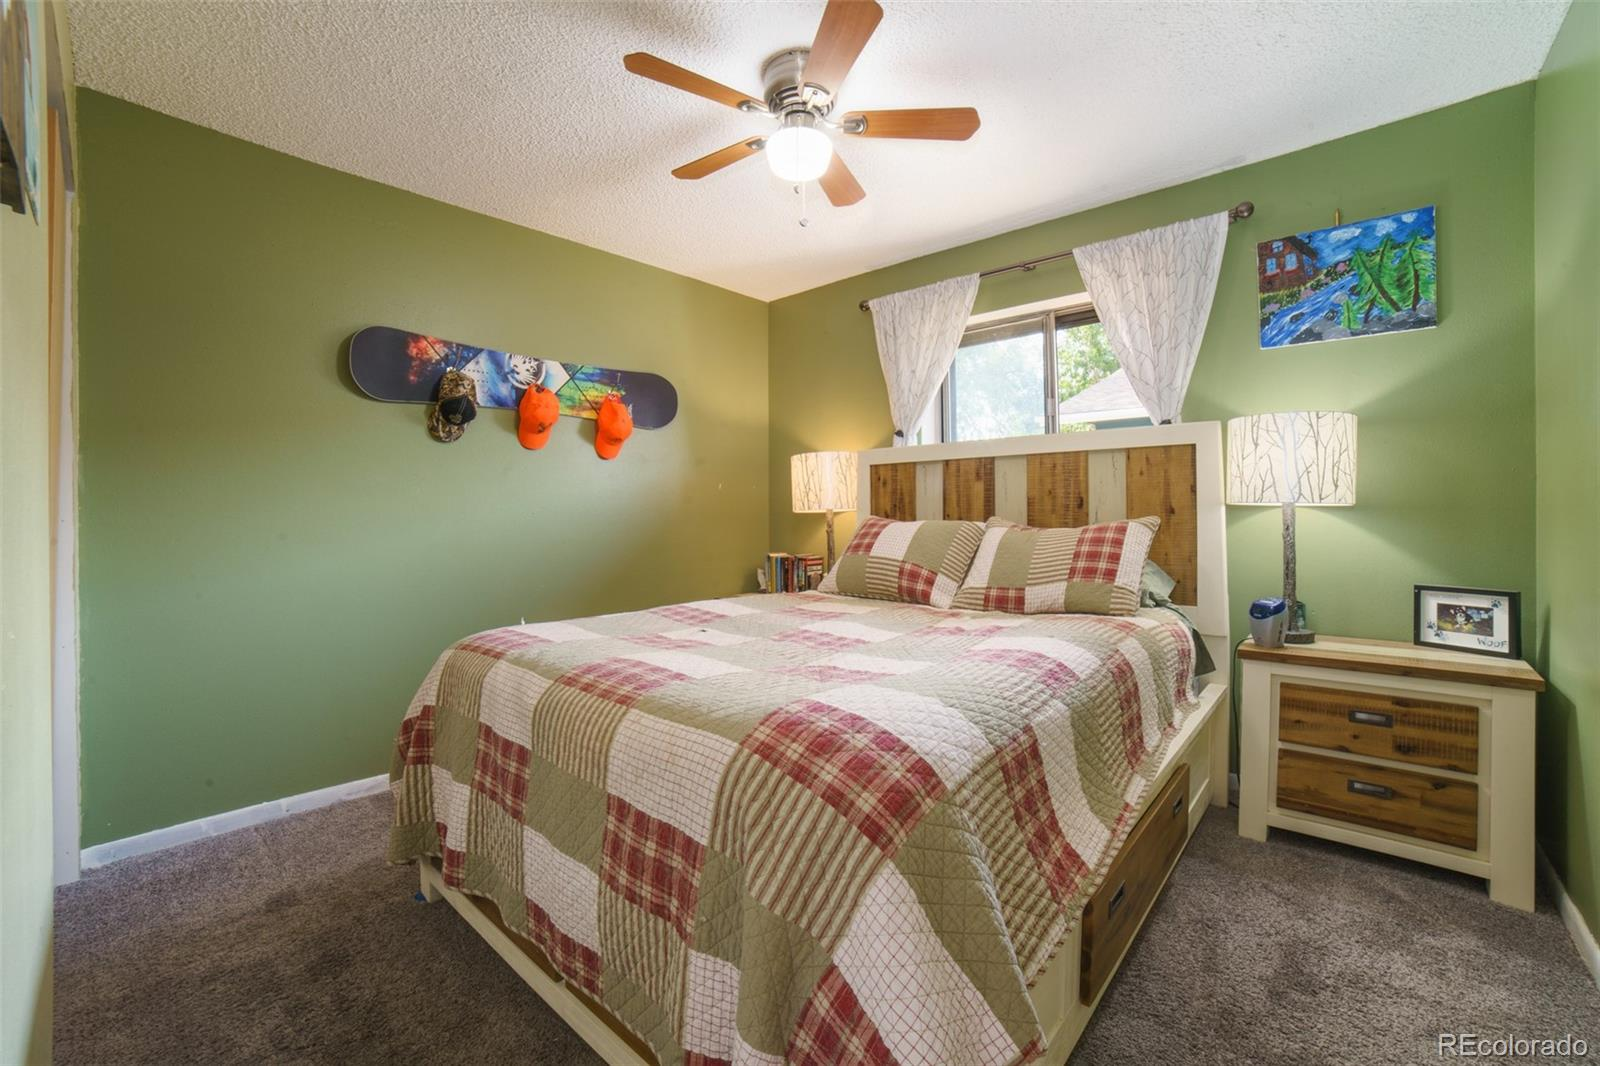 MLS# 7364059 - 9 - 1114 Pacific Way, Fort Lupton, CO 80621